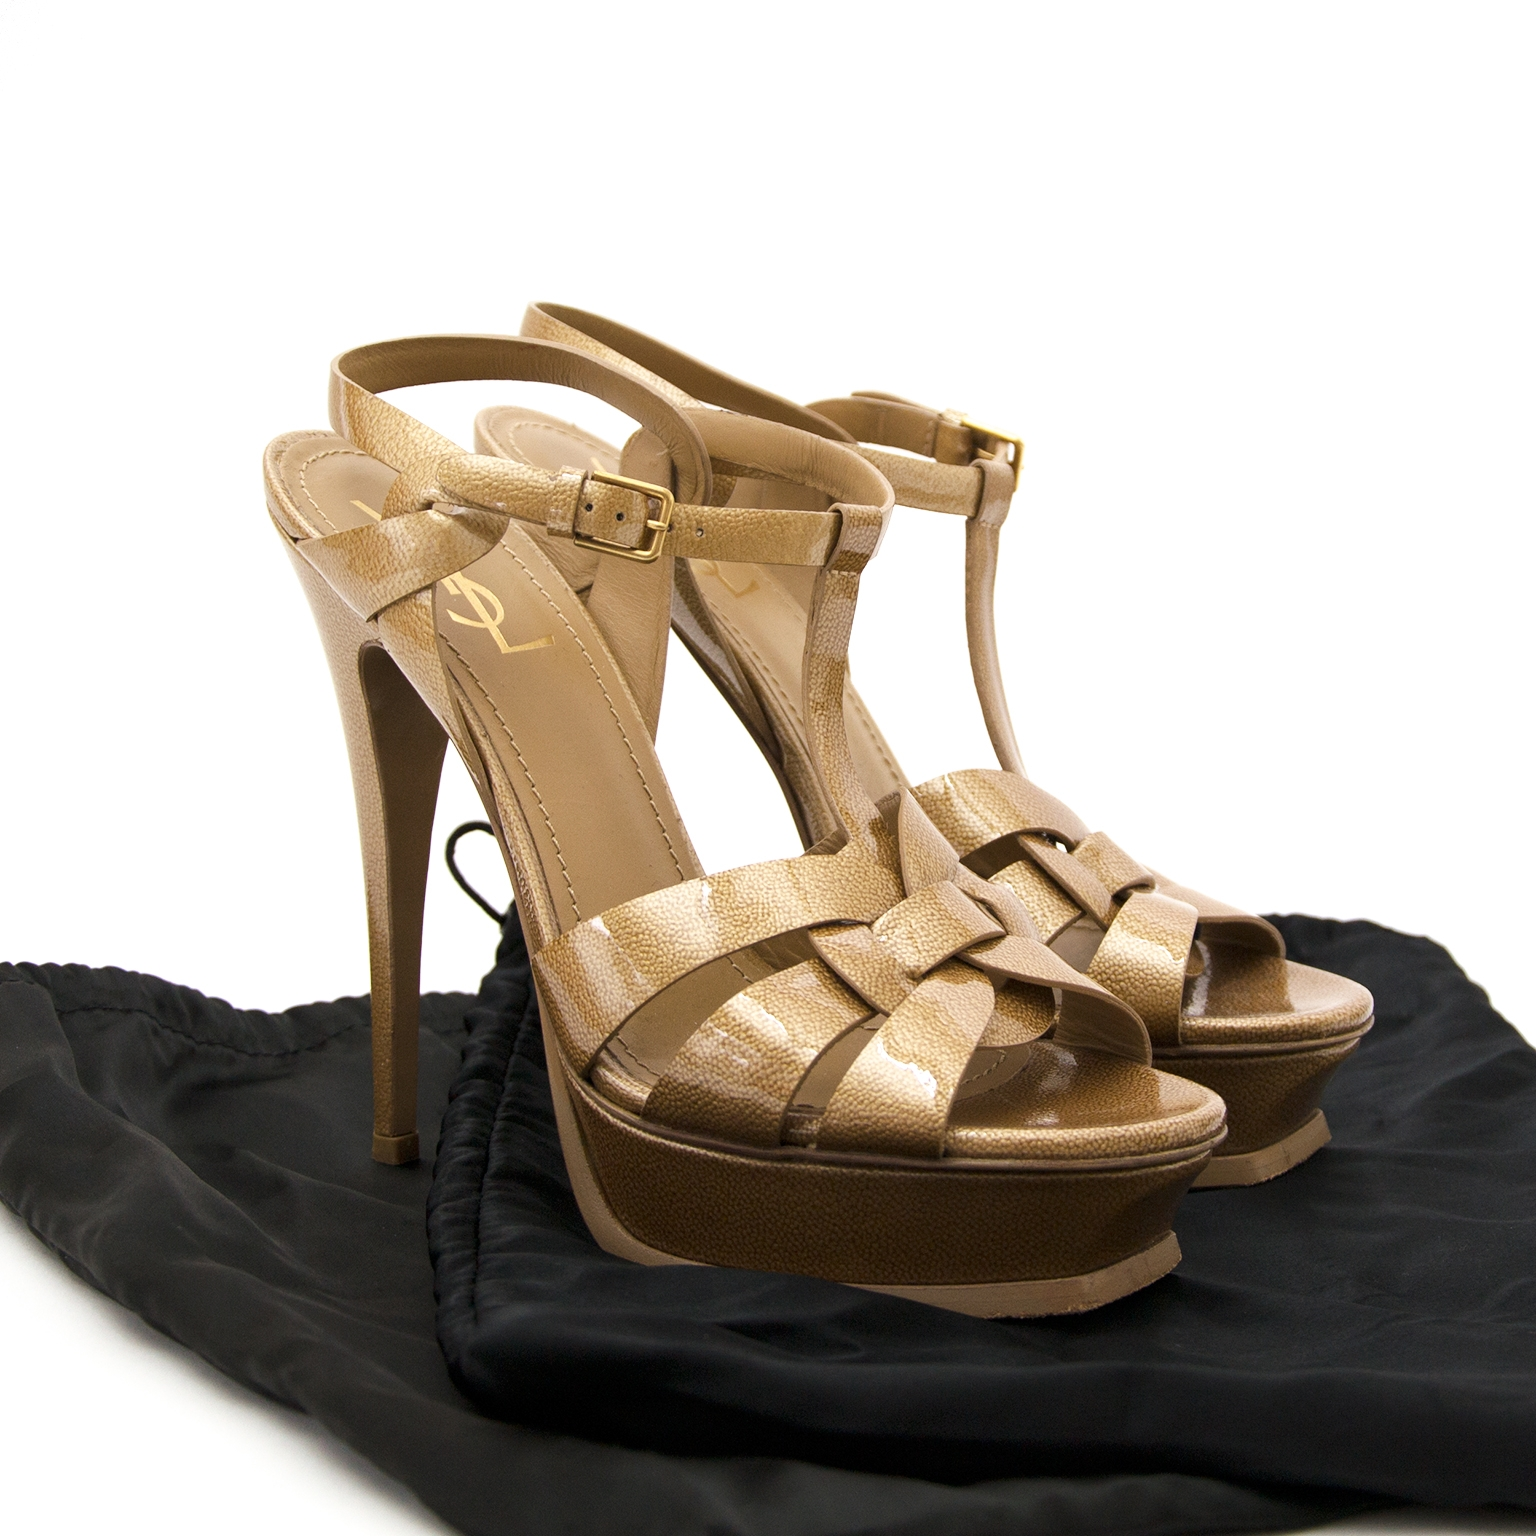 yves saint laurent patent leather tribute sandals now for sale at labellov vintage fashion webshop belgium